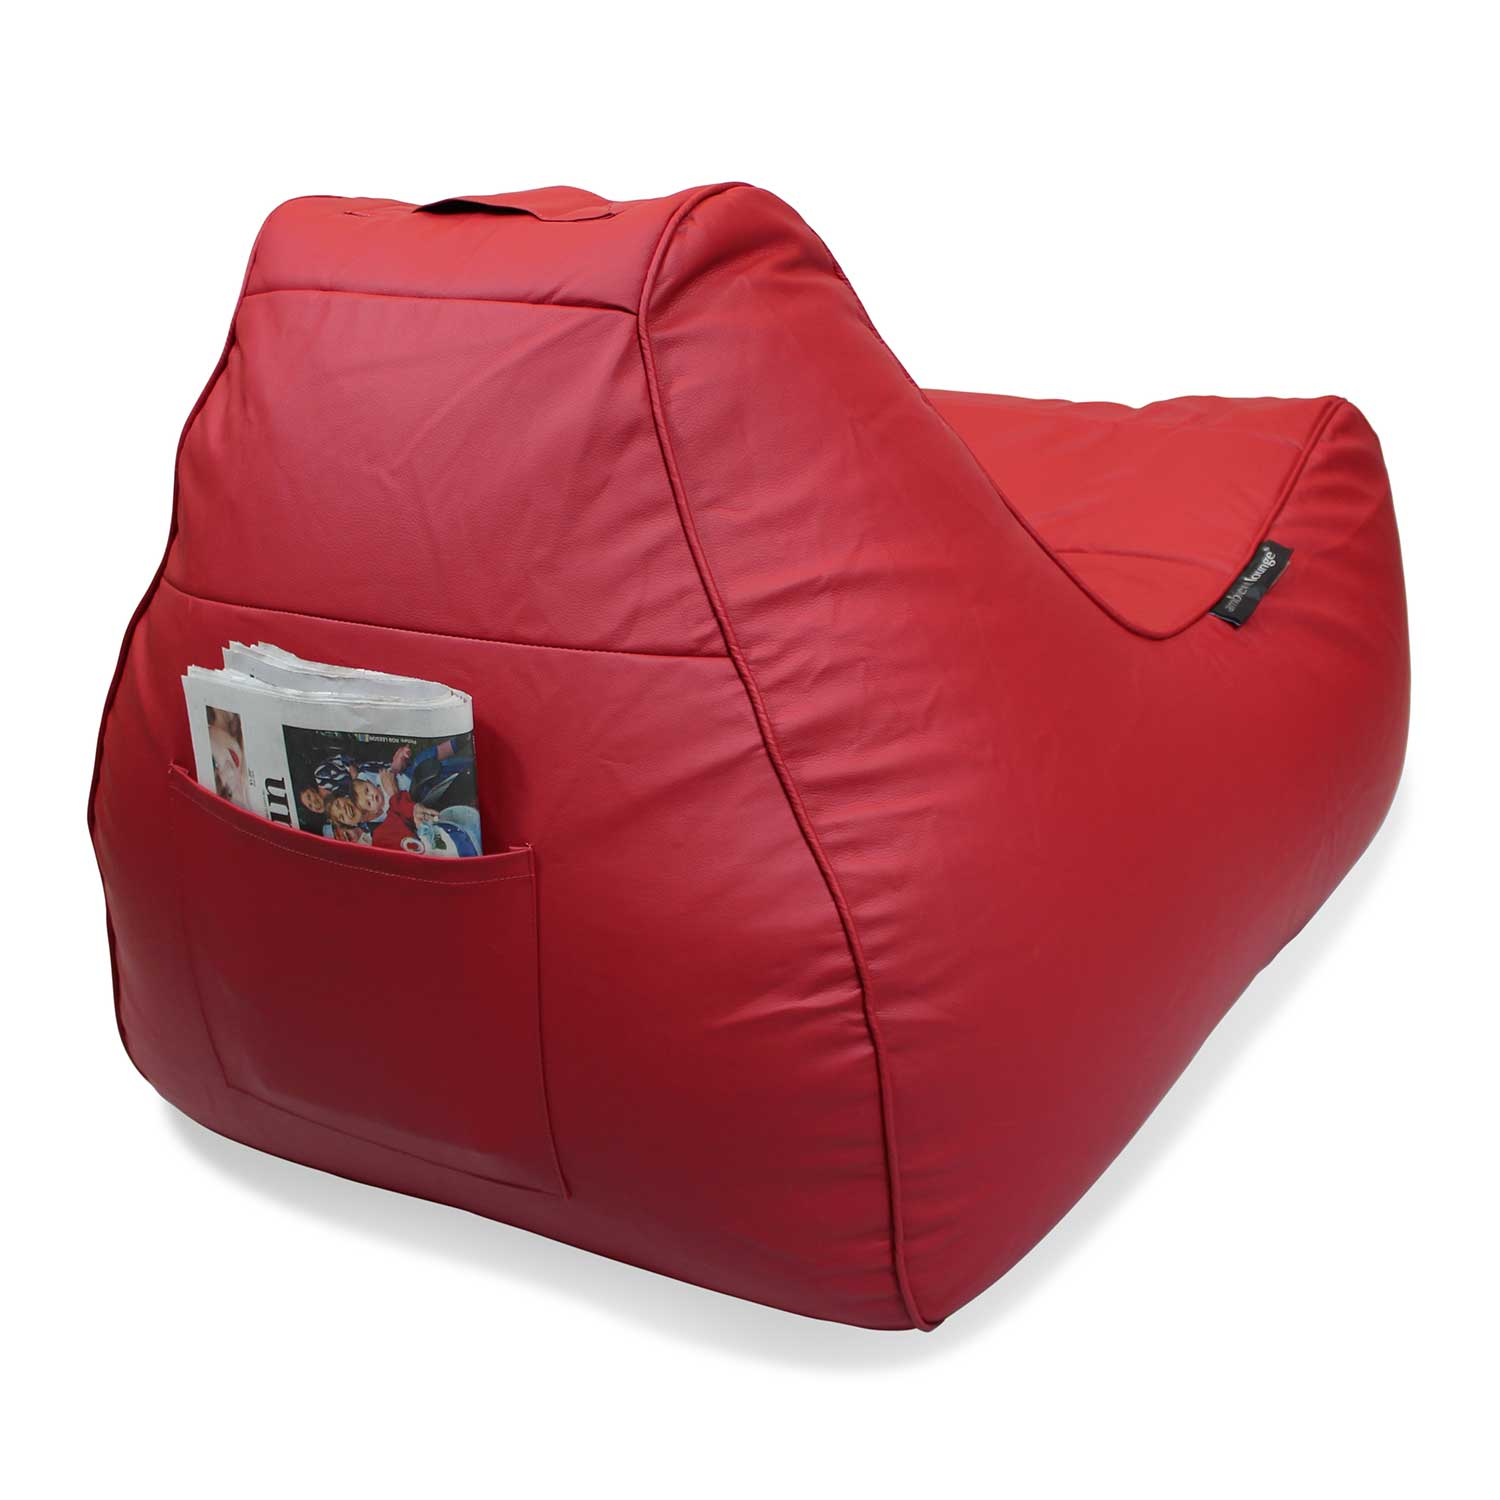 Red Leather Bean Bag